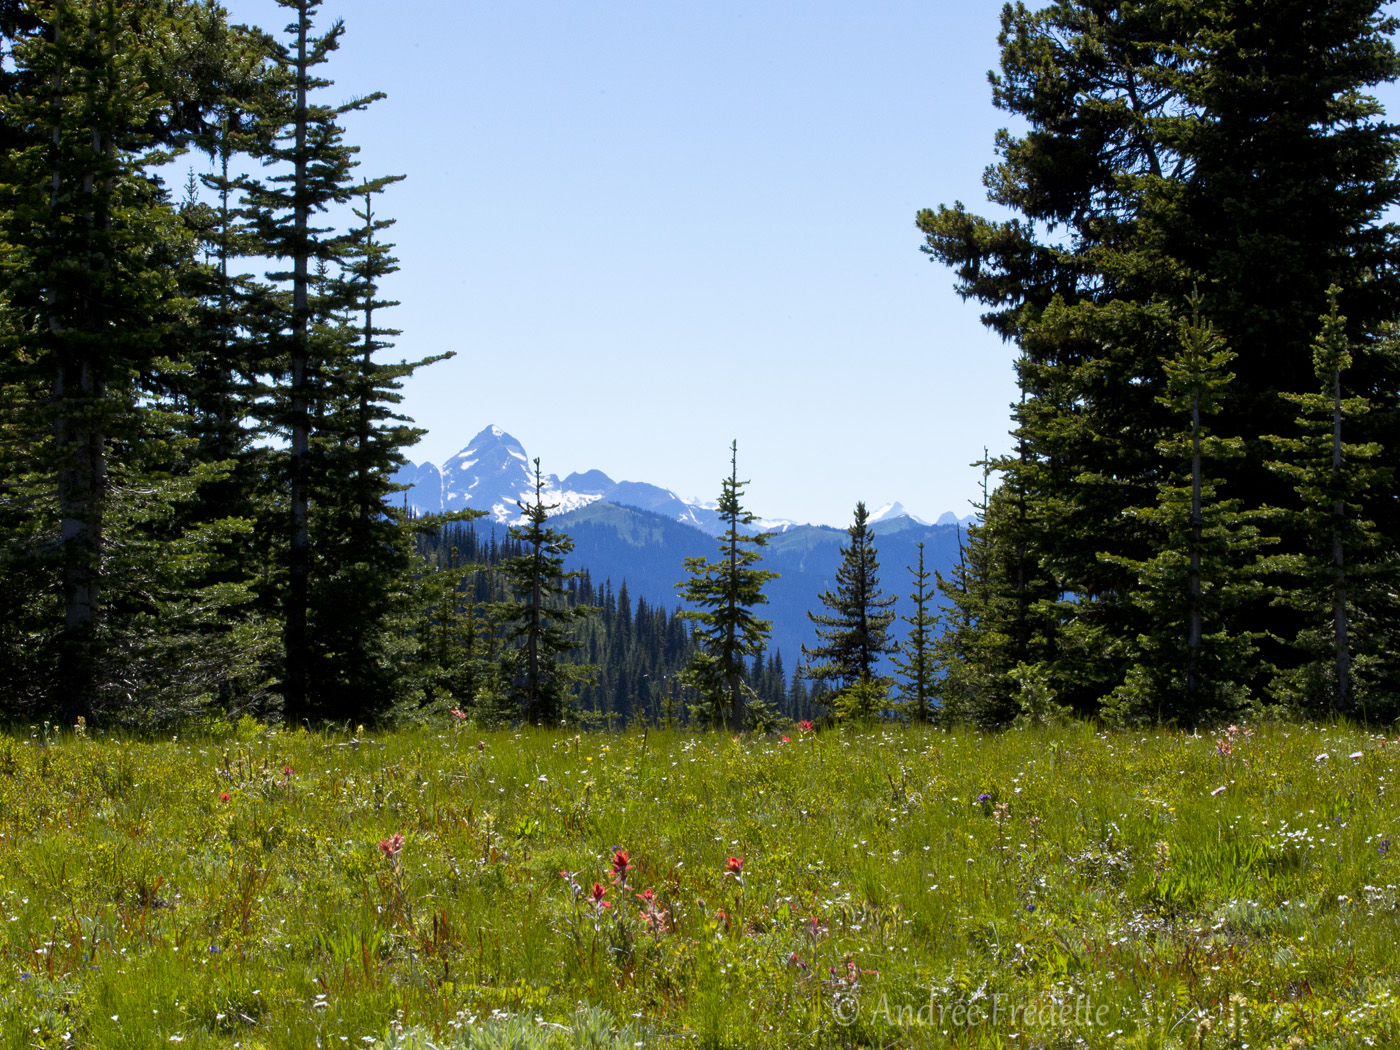 Meadow flowers, BC. Photo by Andrée Fredette